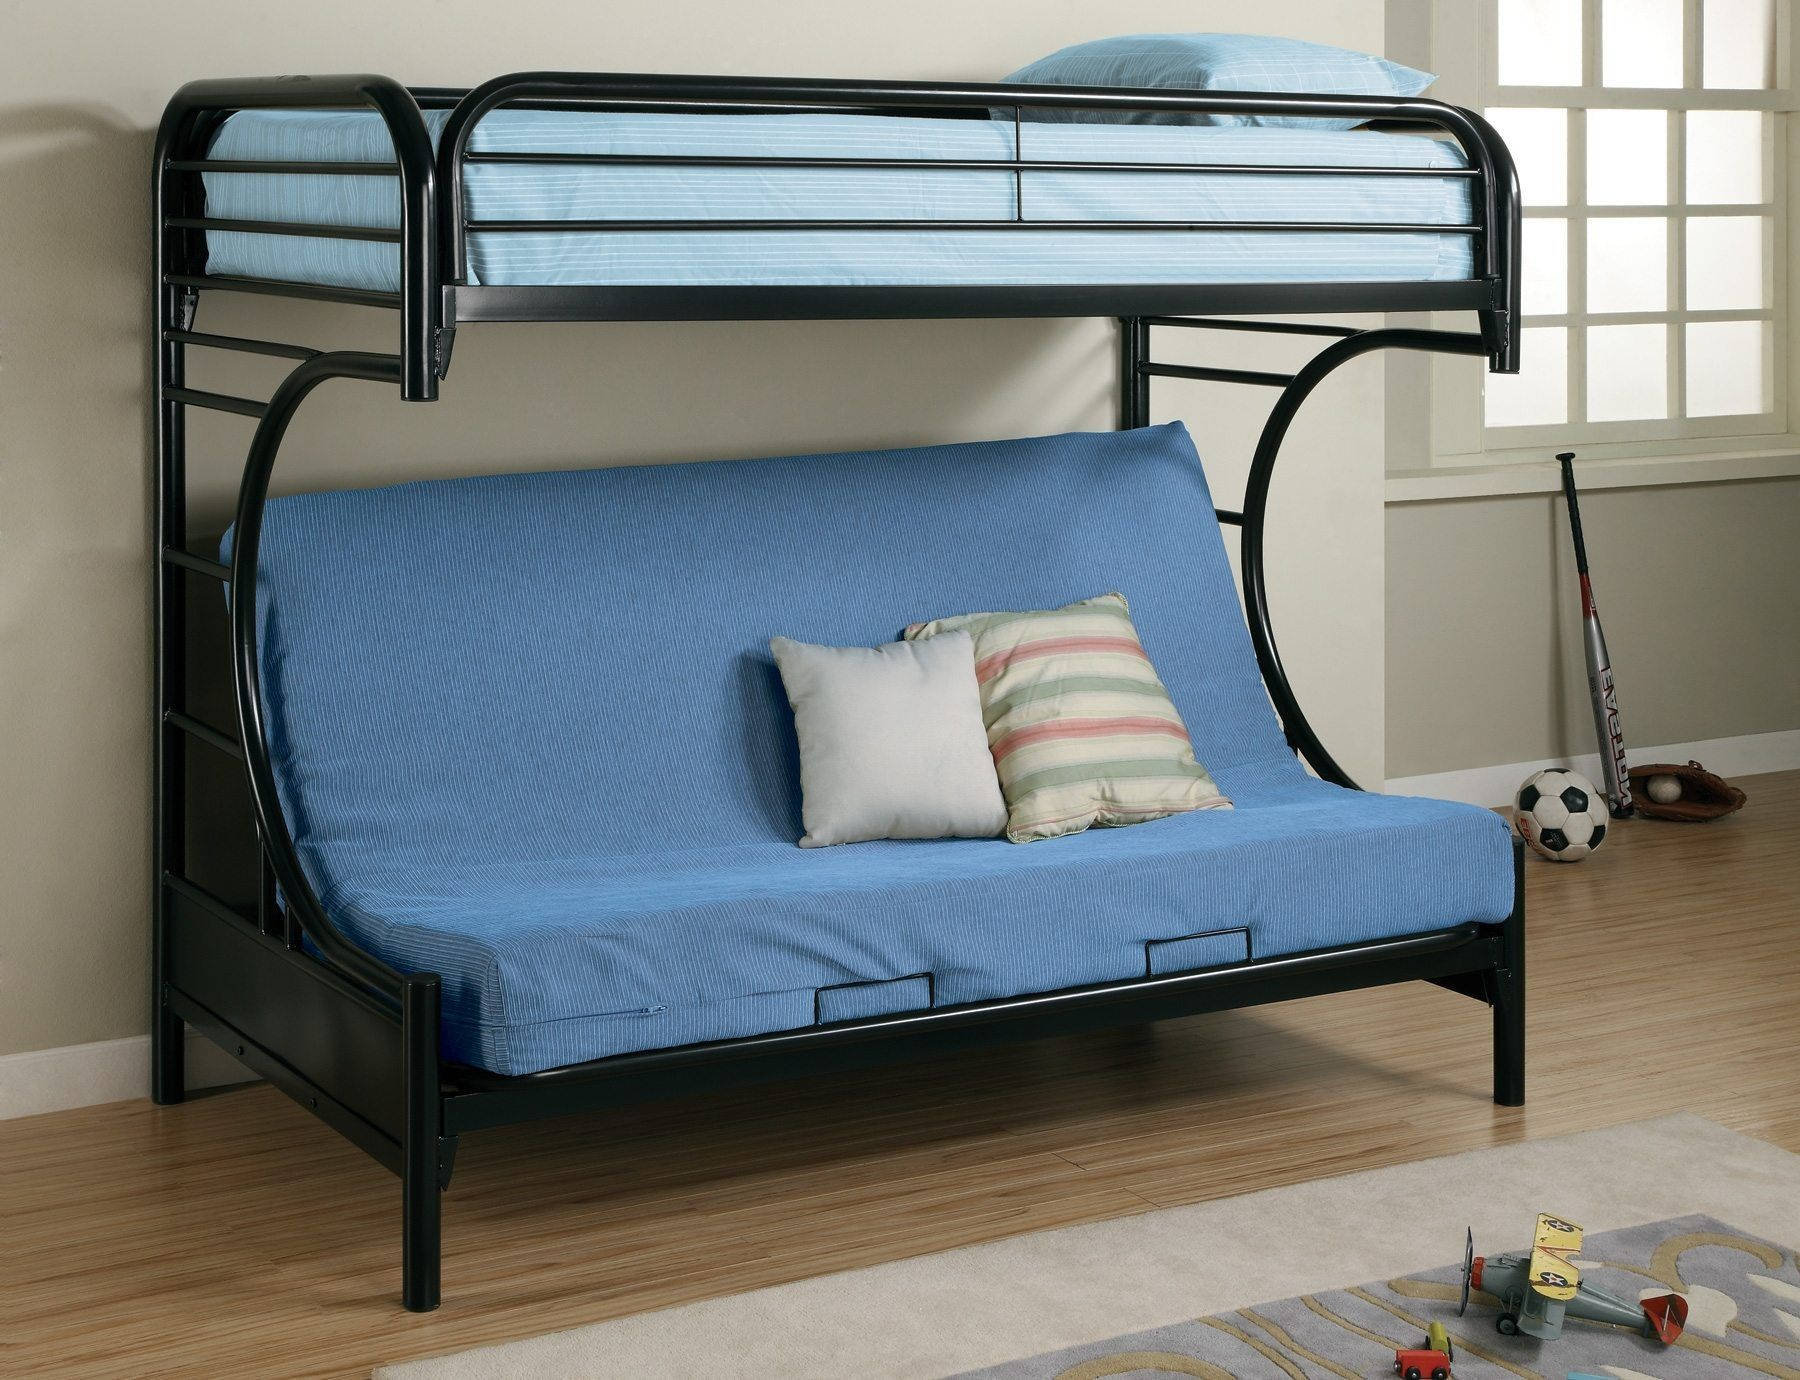 fancy bunk bed sofa inspiration-Fresh Bunk Bed sofa Architecture